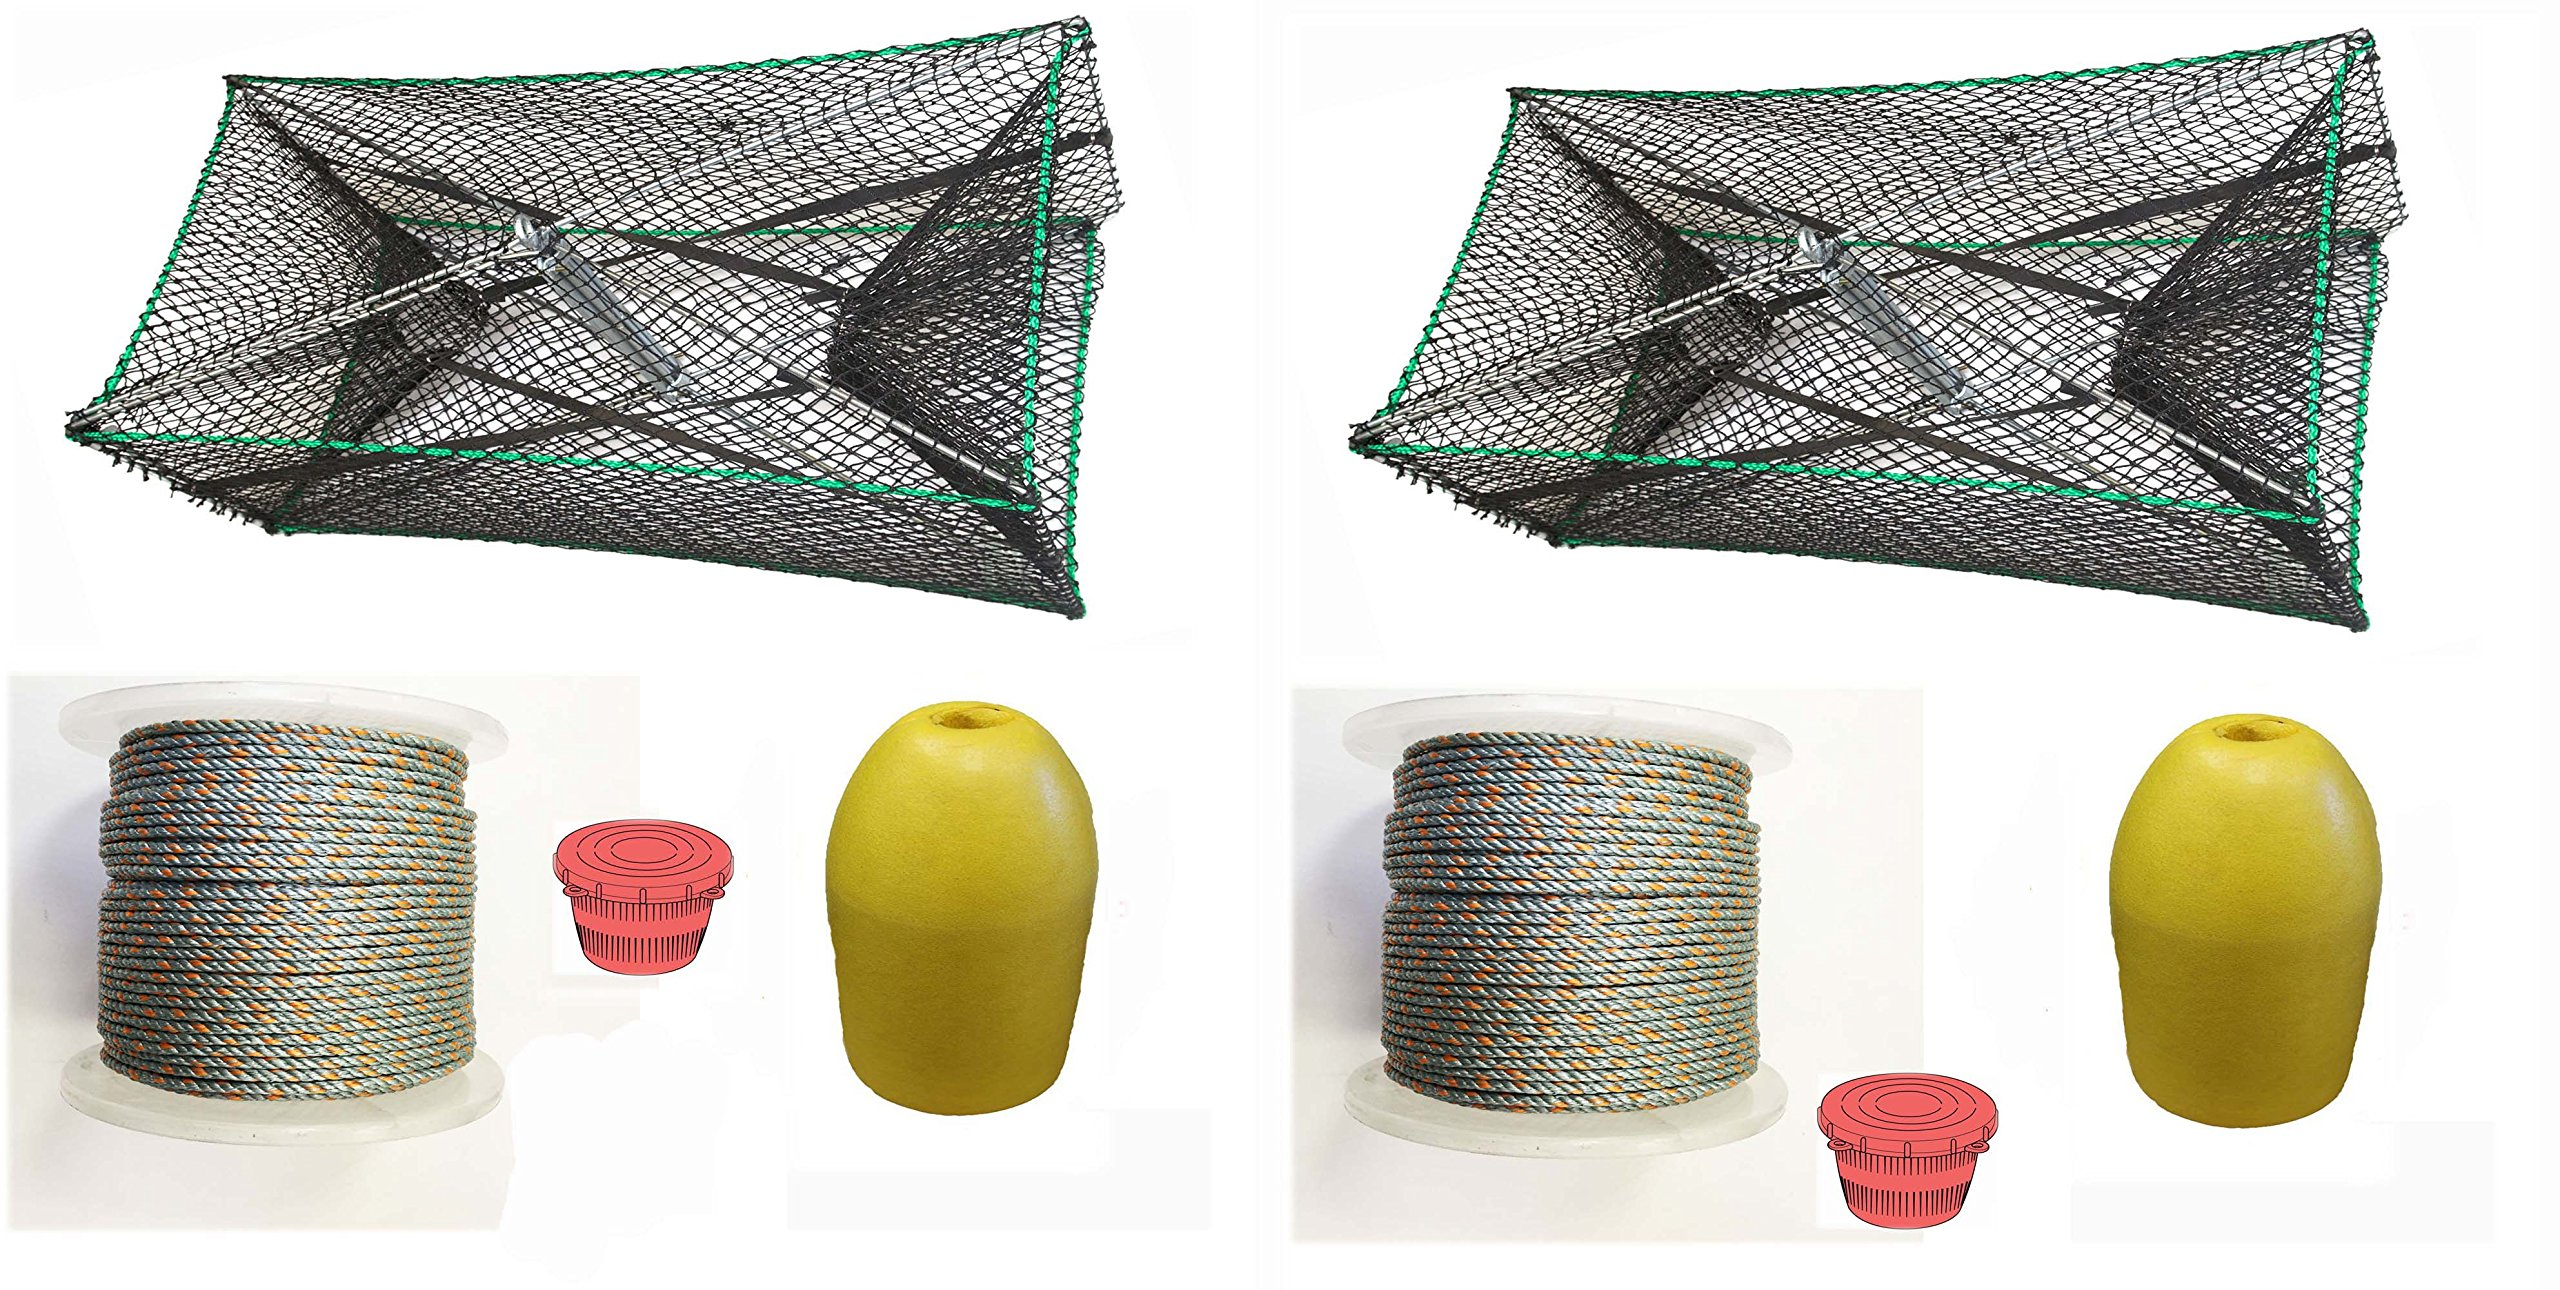 2-Pack of KUFA Sports Galvanized Steel Foldable Prawn trap with 400' rope, Yellow float and Vented Bait Jar combo (S34+PAQ1)x2 by KUFA Sports